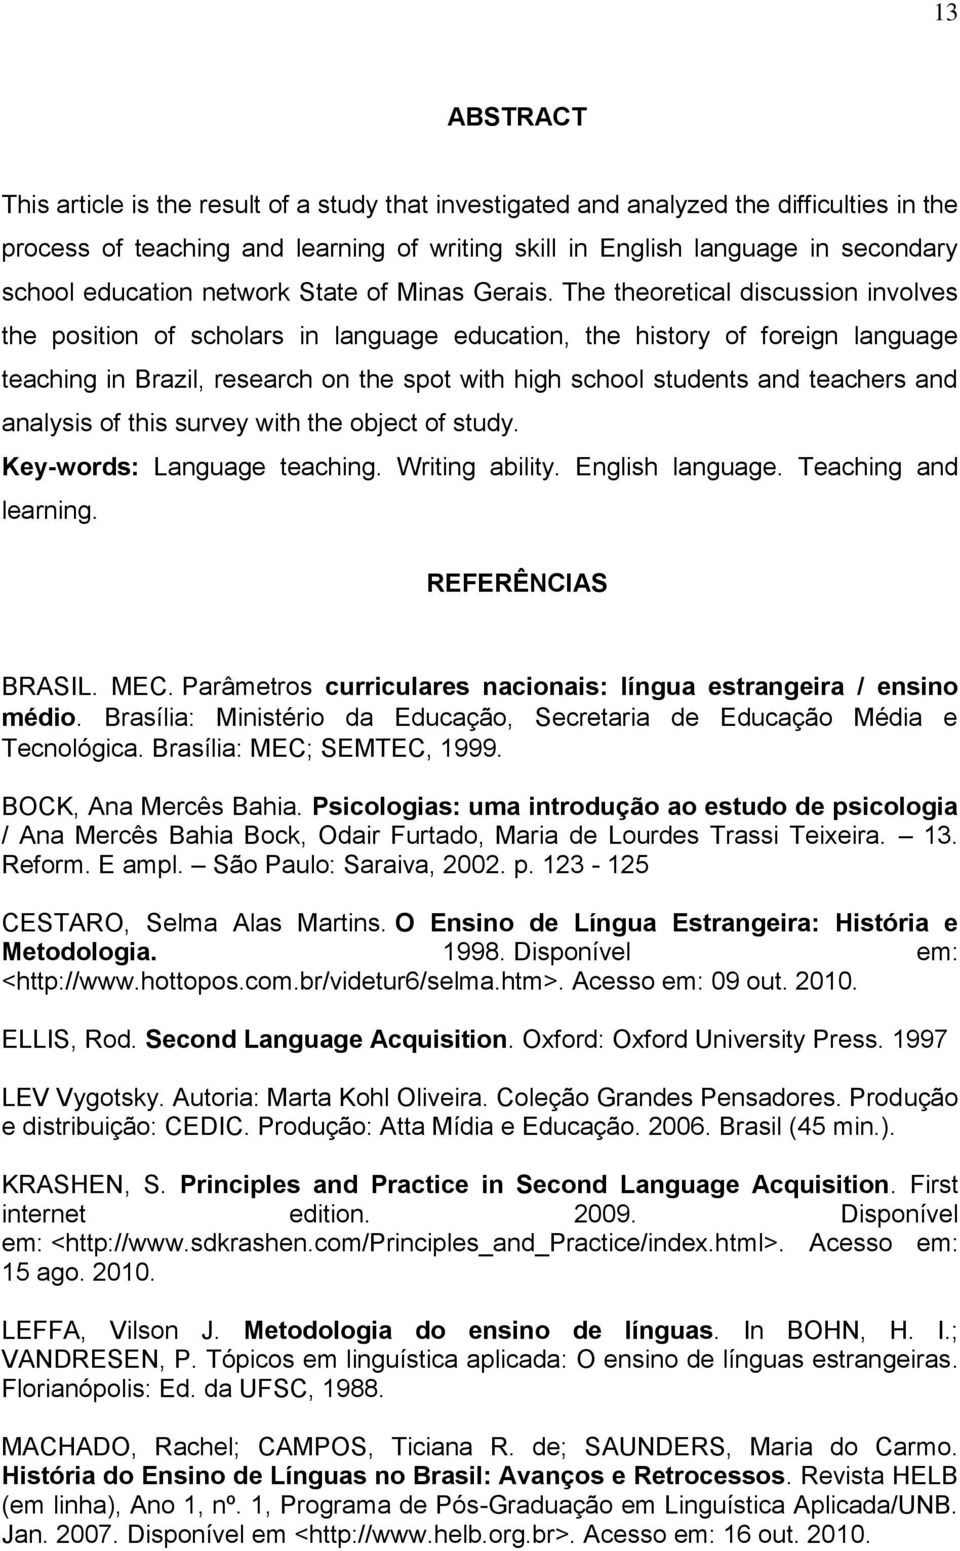 The theoretical discussion involves the position of scholars in language education, the history of foreign language teaching in Brazil, research on the spot with high school students and teachers and